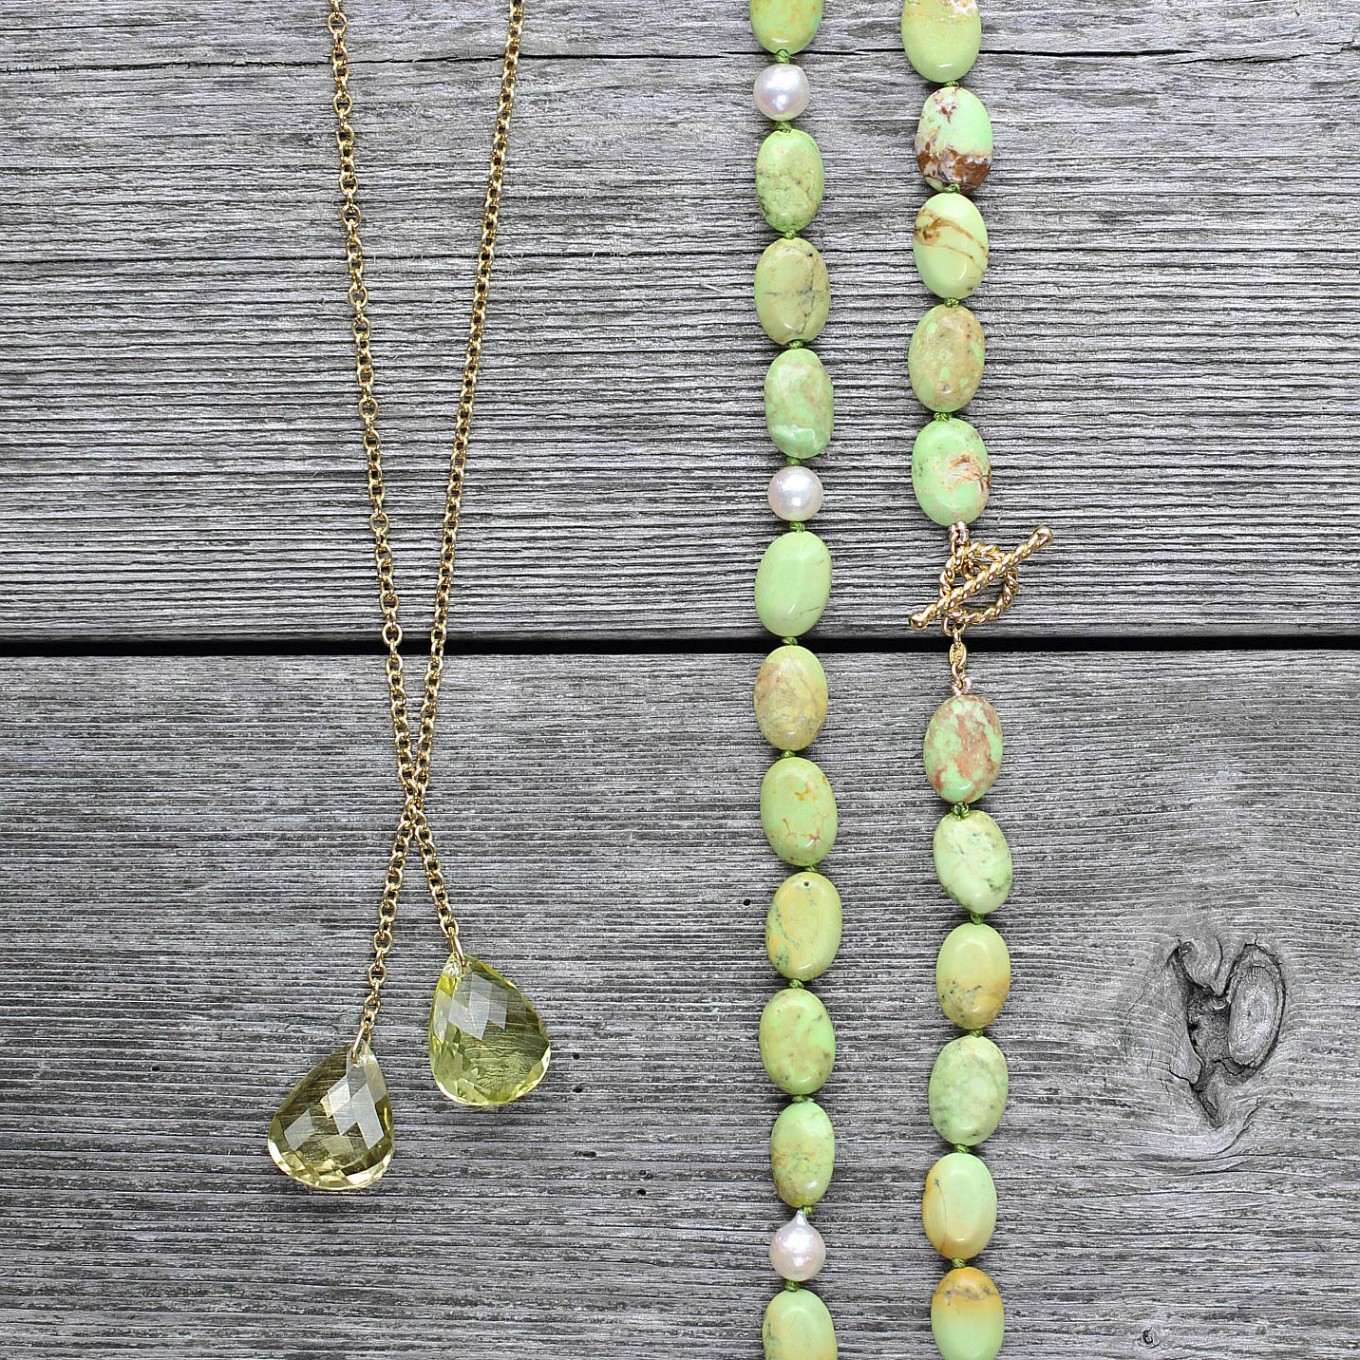 Lemon Citrine double drop necklace on handmade gold chain. - Green Turquoise ,  Freshwater Pearl opera length necklace with yellow gold braided bar clasp